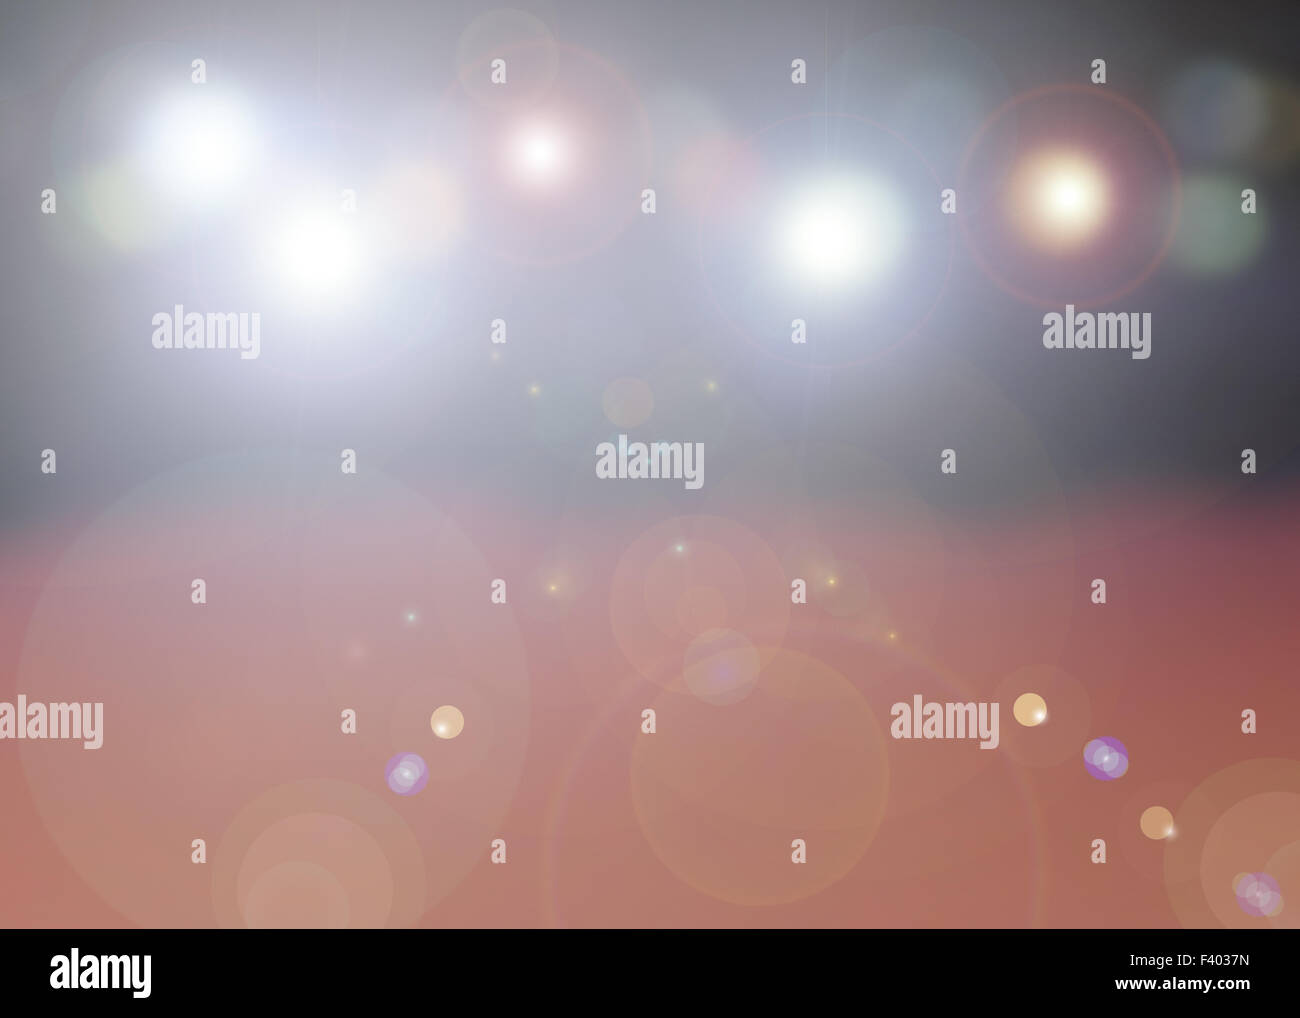 Celebration background - Stock Image